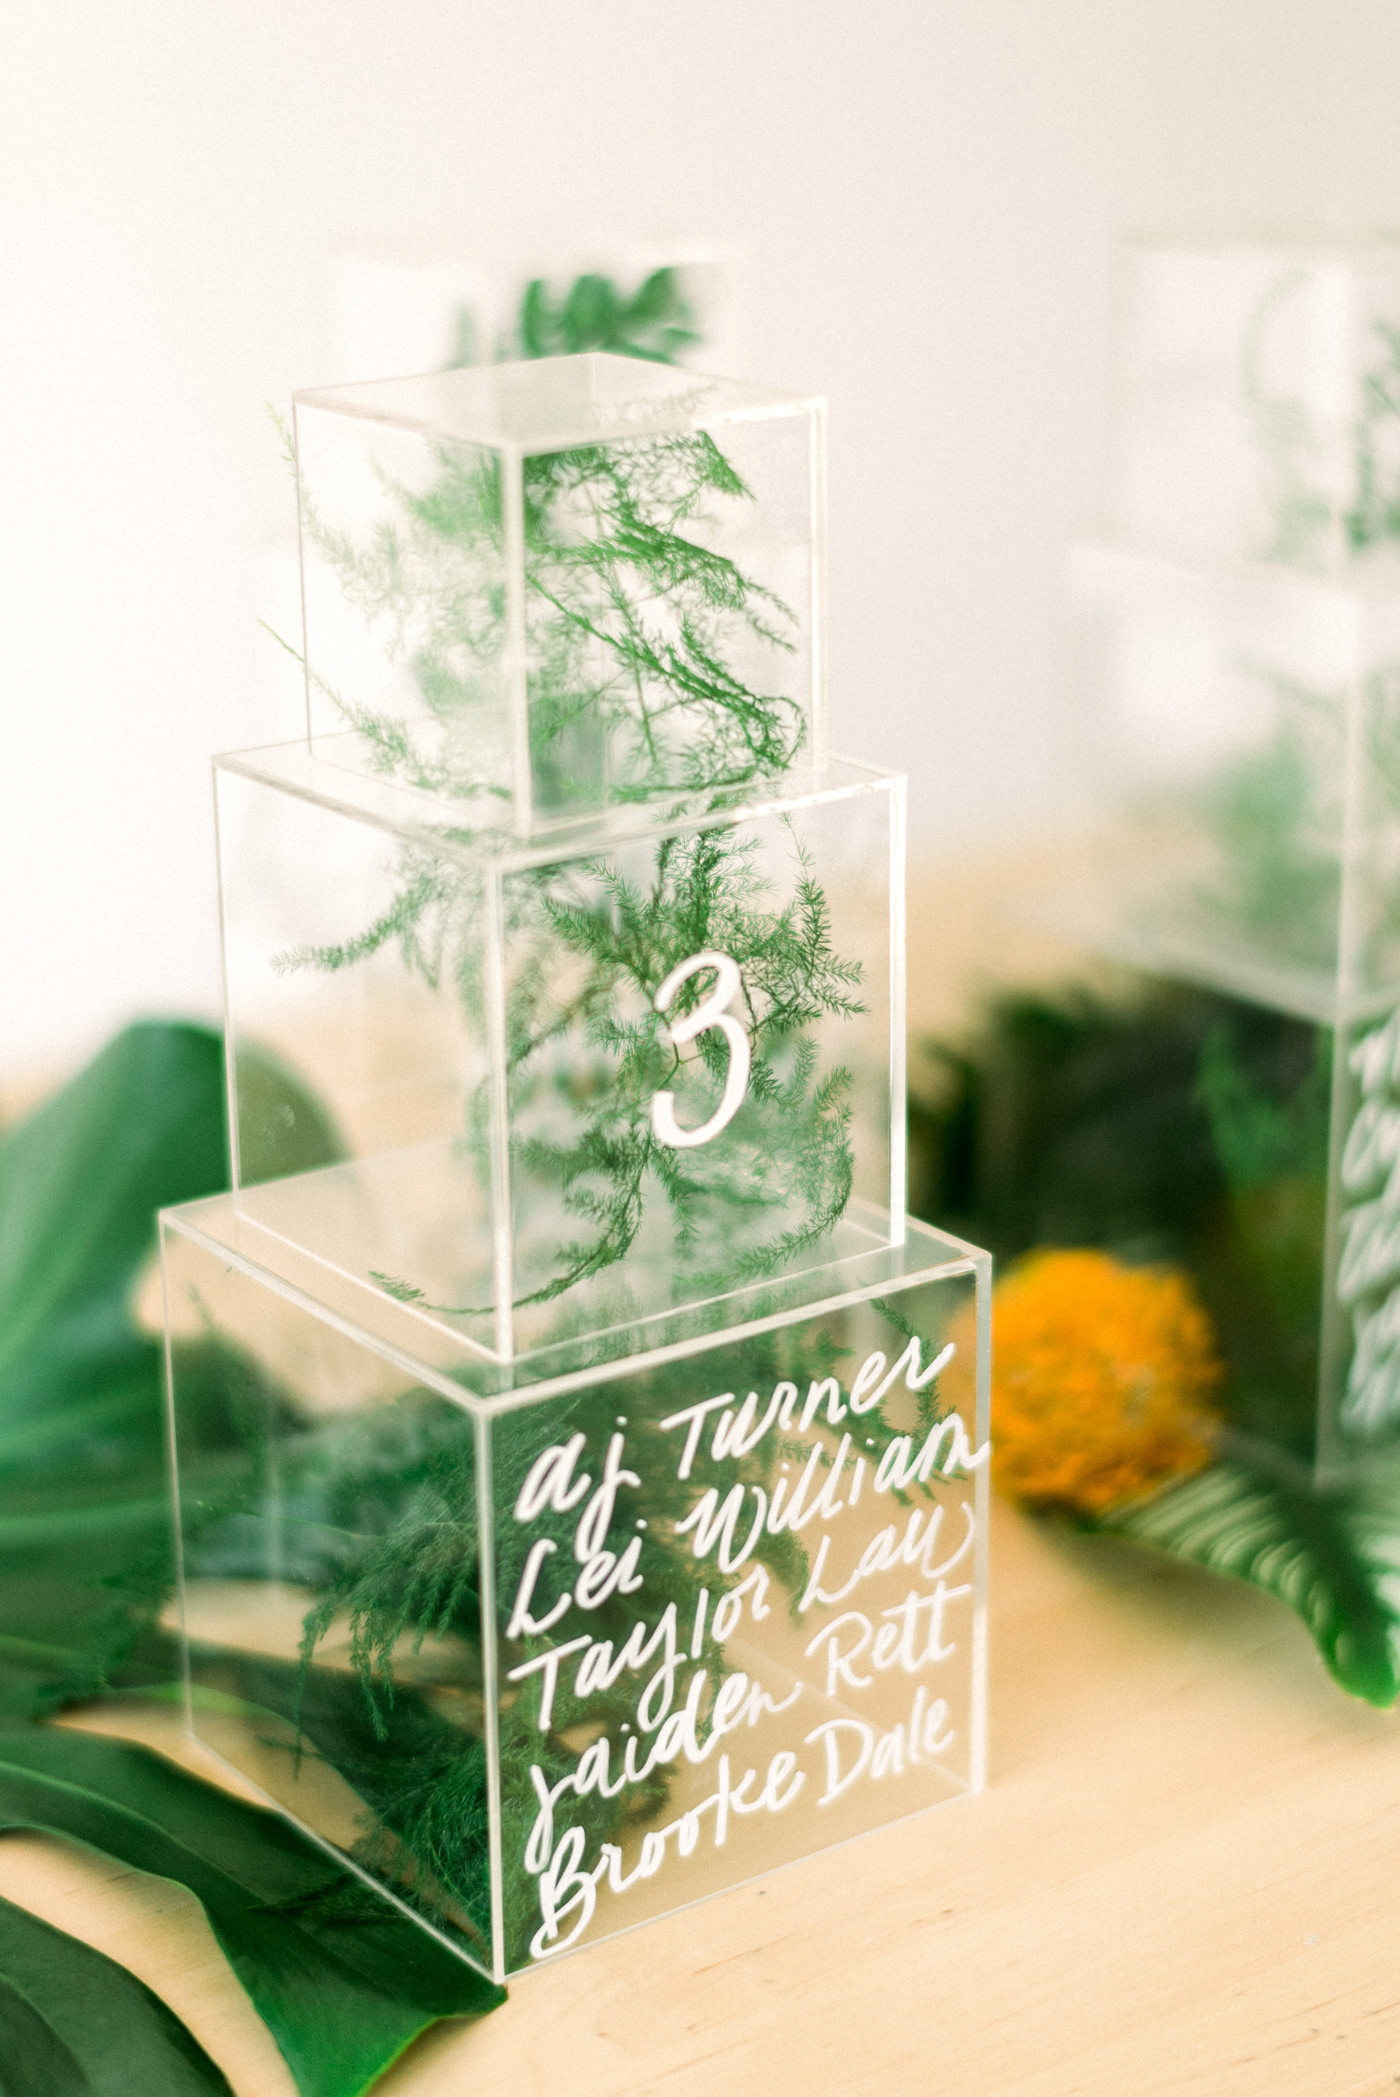 lucite box towers containing greenery seating chart display